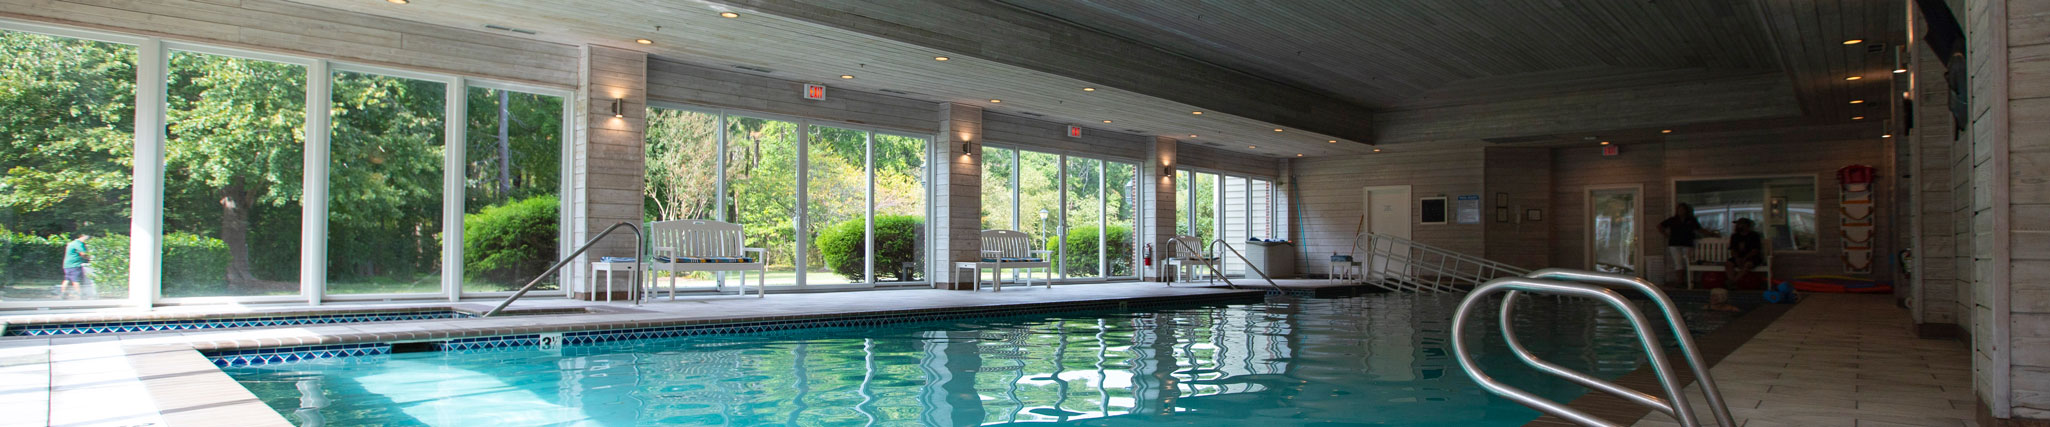 indoor pool at Atlantic Shores independent living community